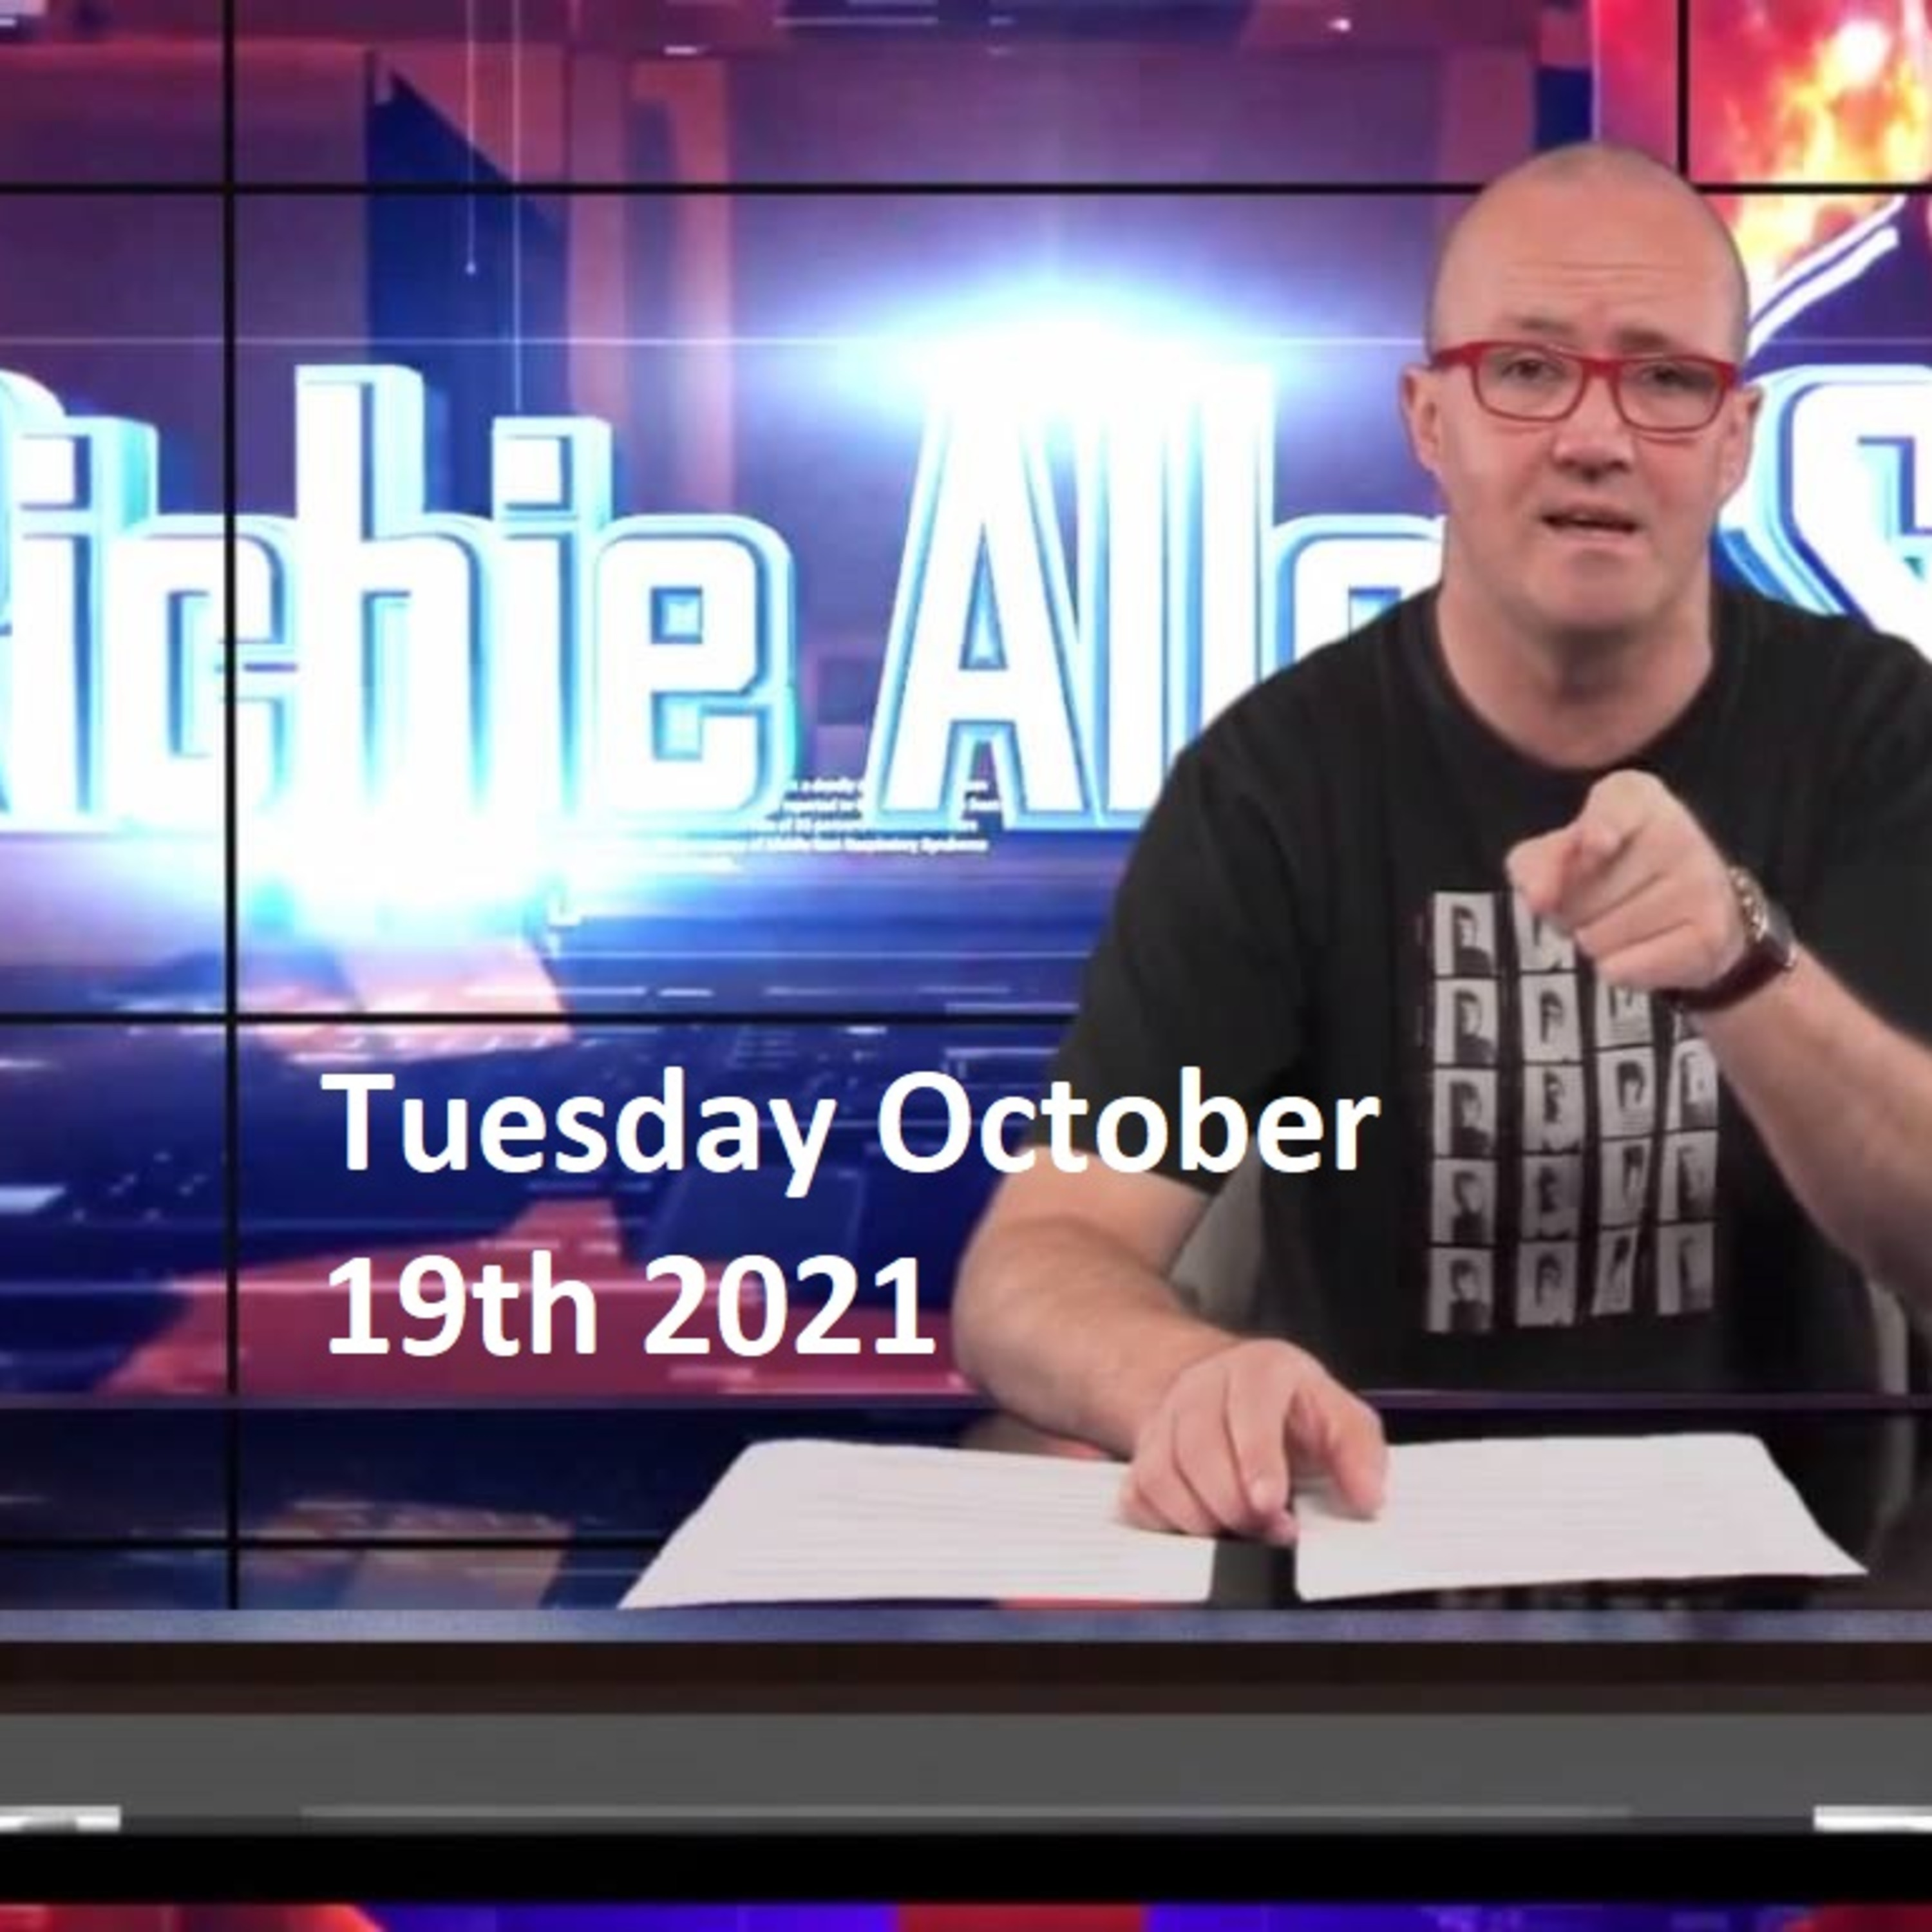 Episode 1350: The Richie Allen Show Tuesday October 19th 2021